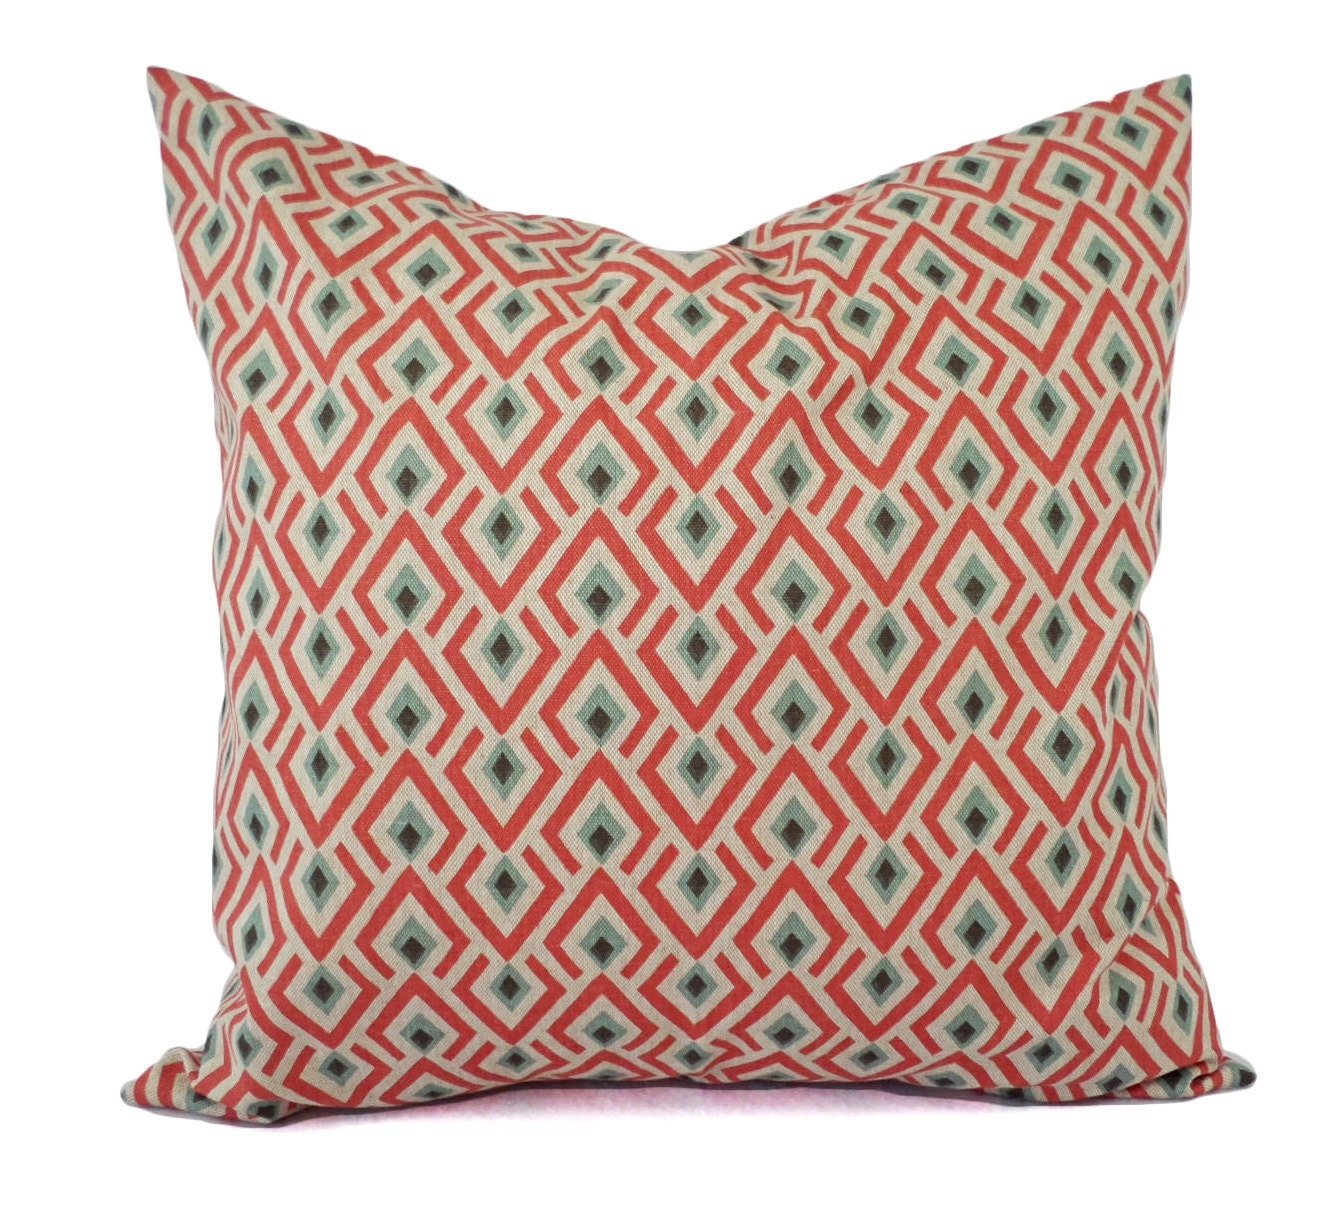 Two Orange Brown and Blue Decorative Pillow Covers Two